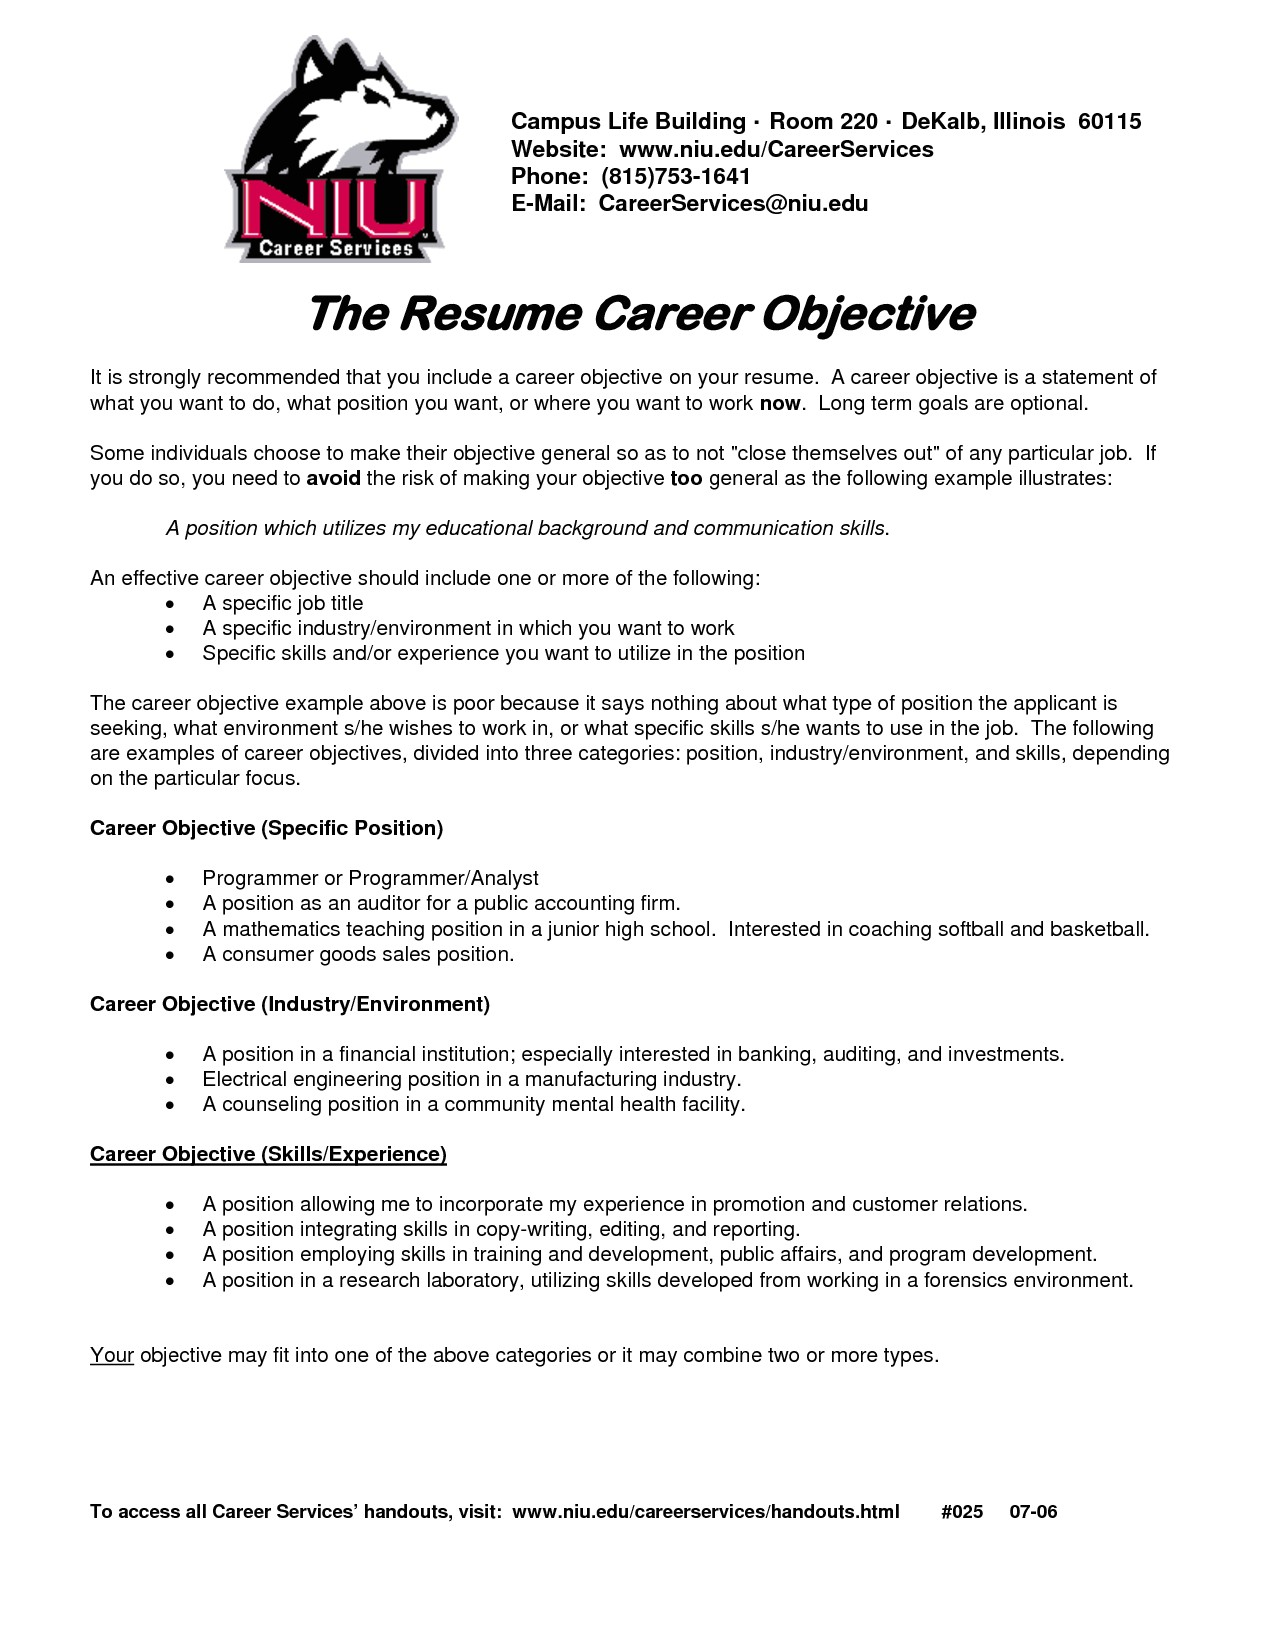 2016 resume objective example